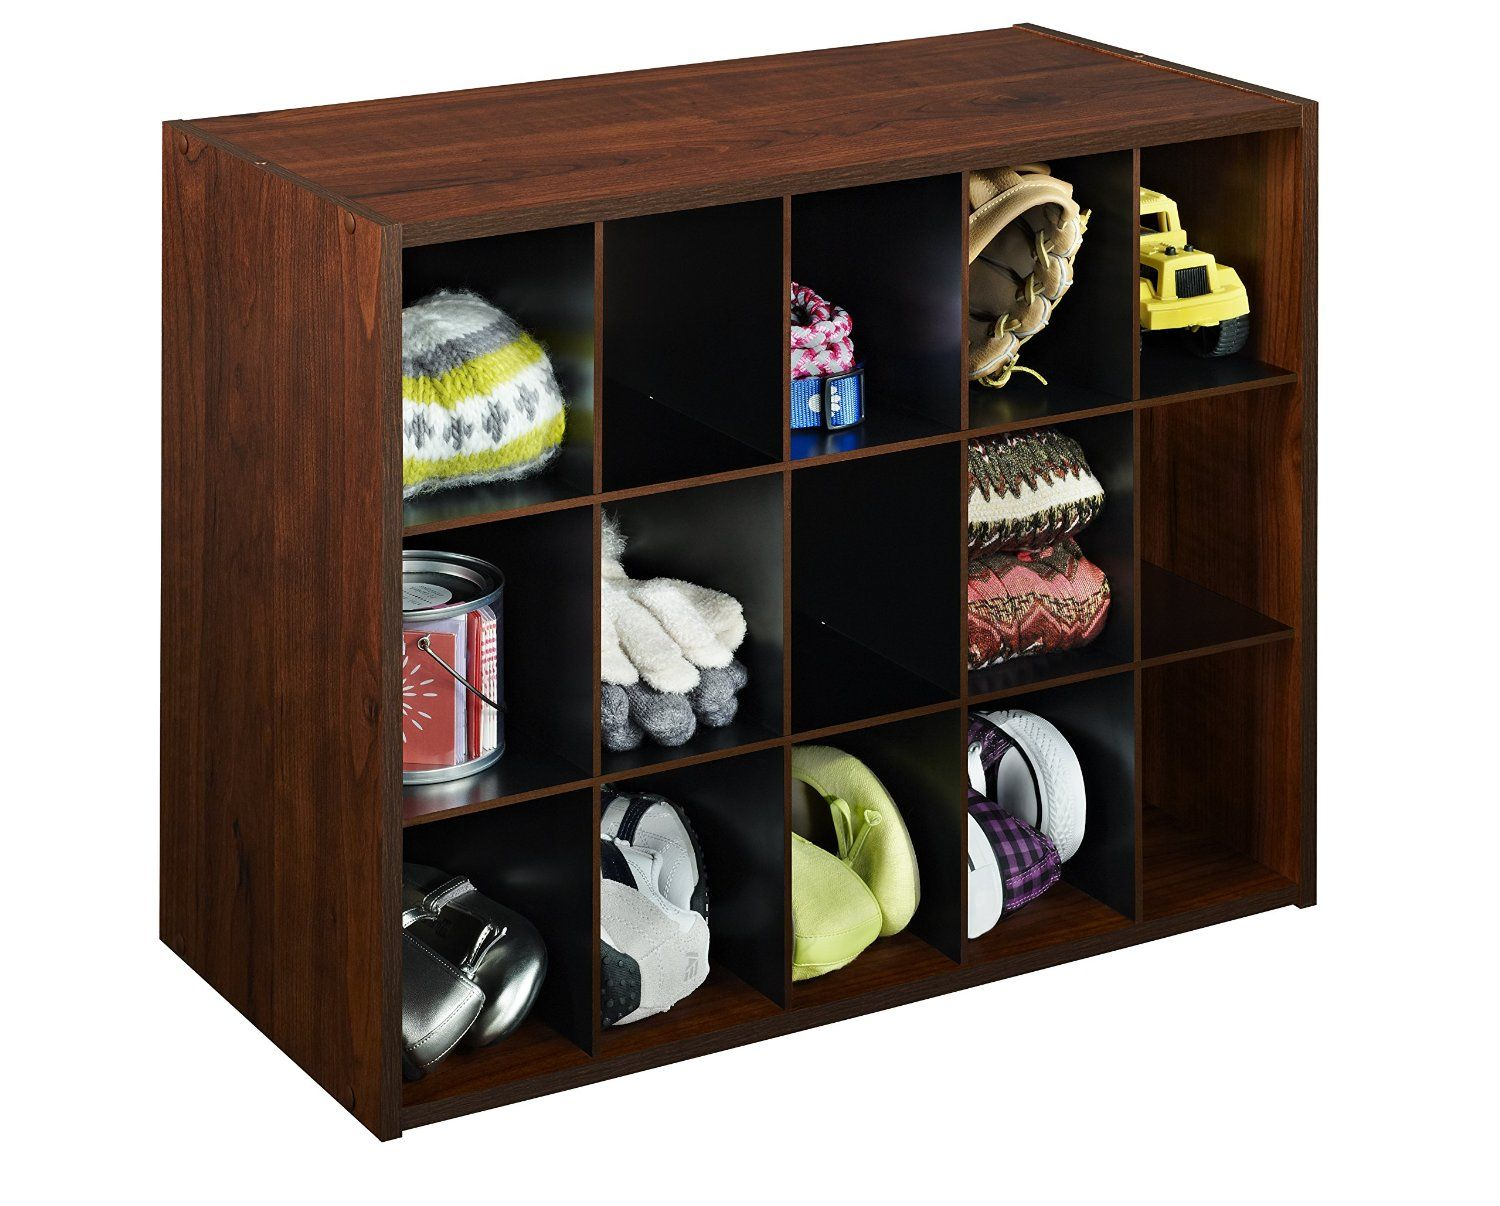 ... Dark Cherry   ID229594   Auction   Closetmaid Stackable Storage  Organizers Are A Convenient Way To Hold Shoes, Hobbies, Media And Office  Supplies.   Buy ...